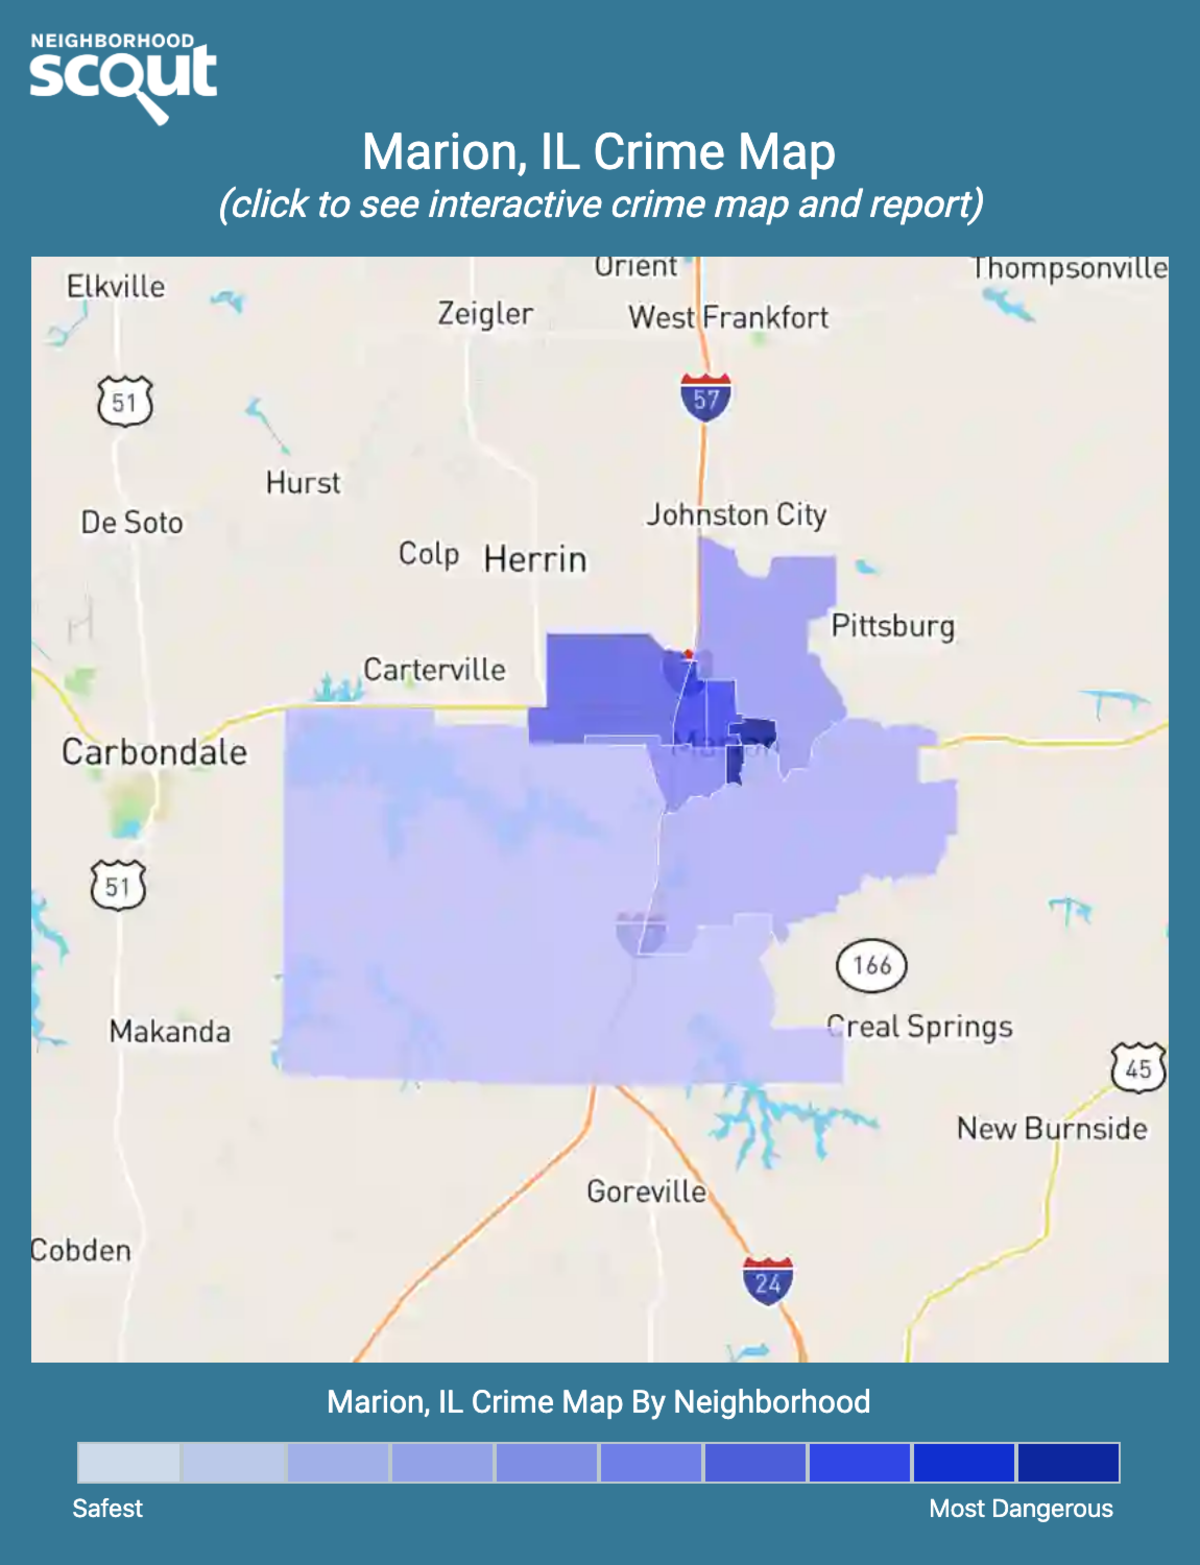 Marion, IL Crime Rates and Statistics - NeighborhoodScout on map of marion ohio, mapquest marion il, marion city il, map of marion indiana, map of central falls ri,